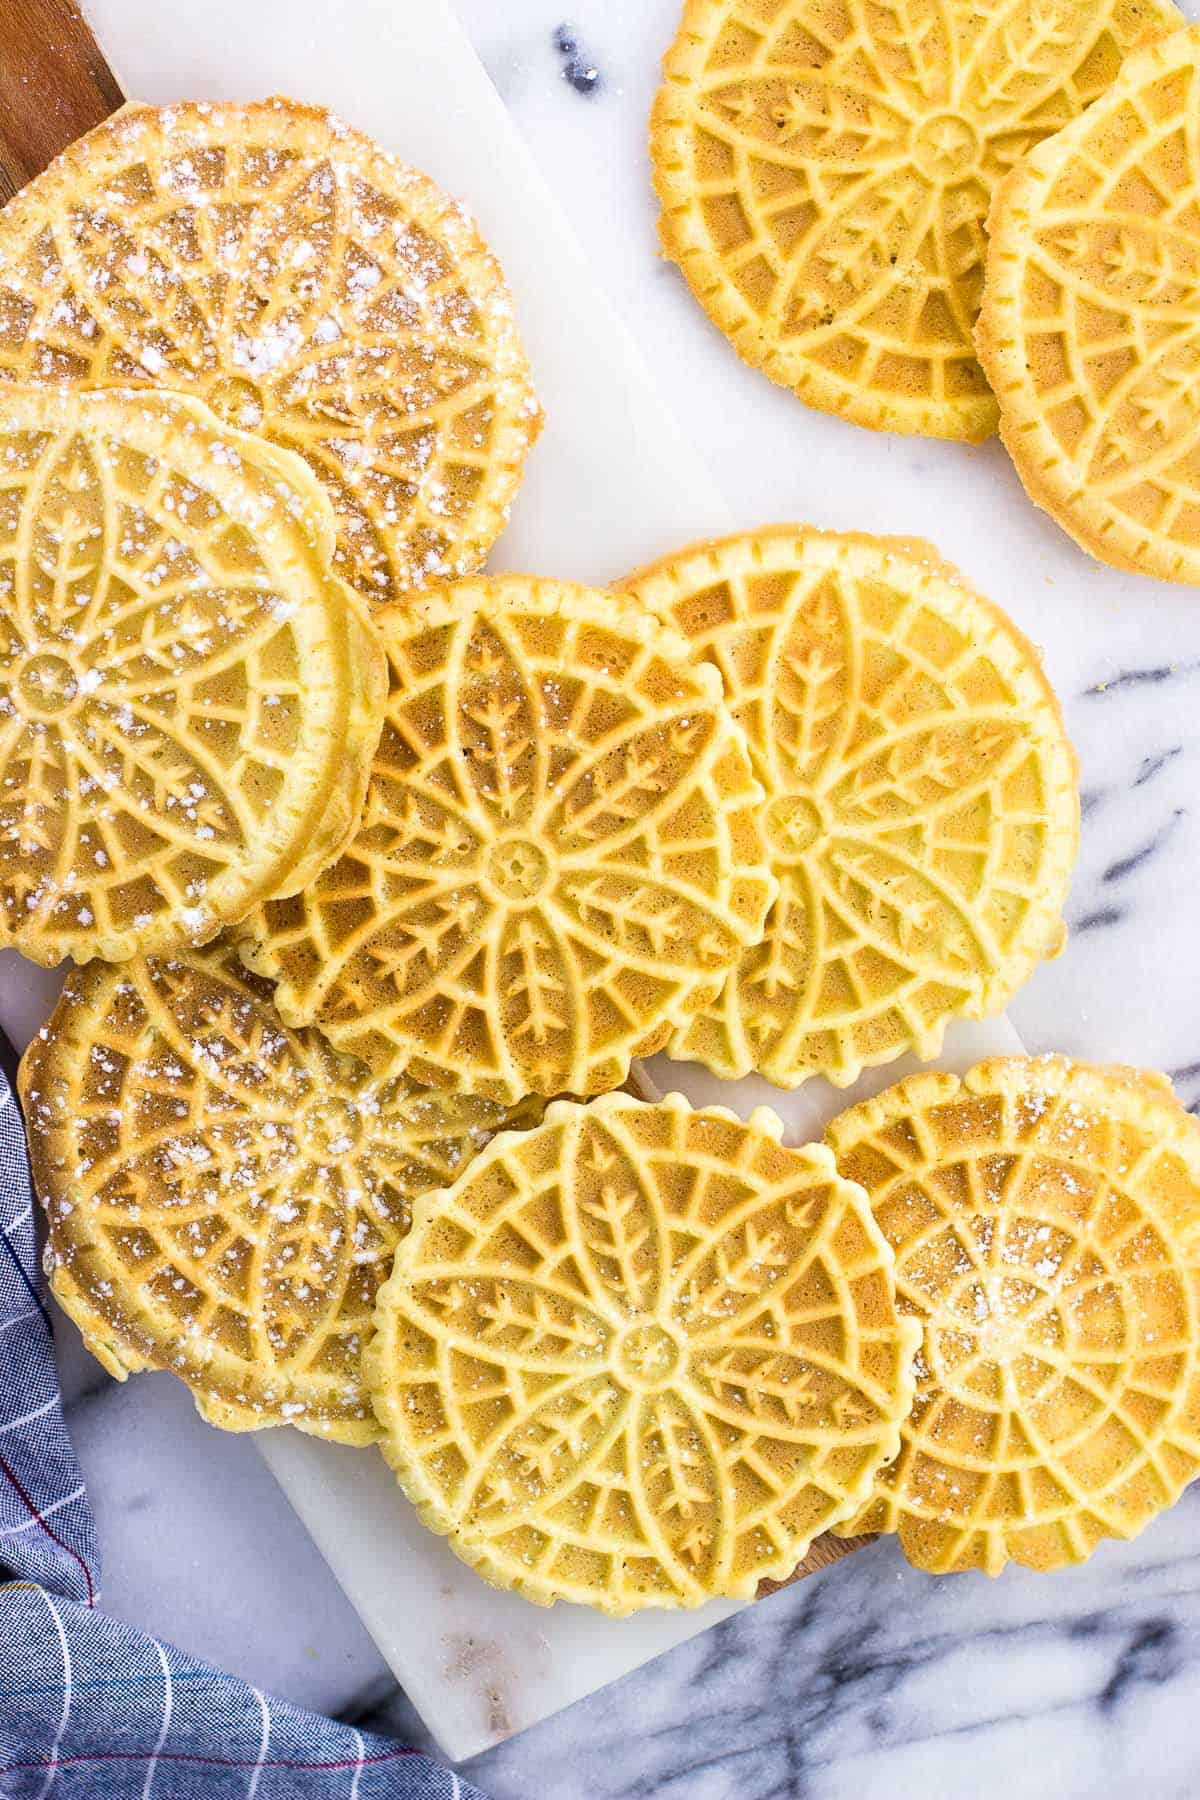 Pizzelle dusted with powdered sugar on a marble board